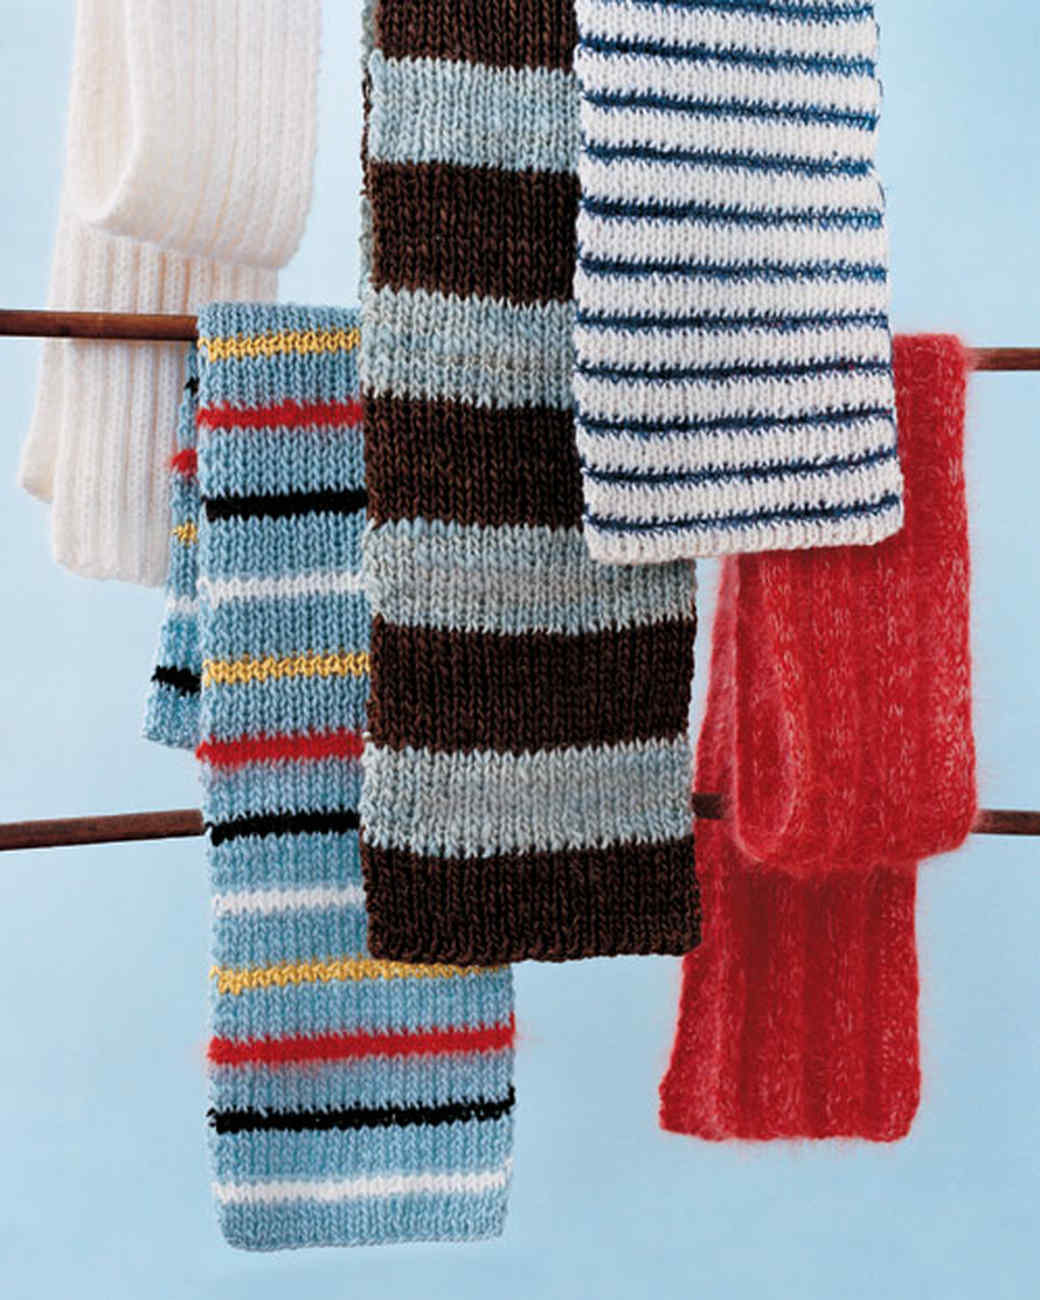 Knitting Ideas: Charming Patterns and Creative Projects | Martha ...